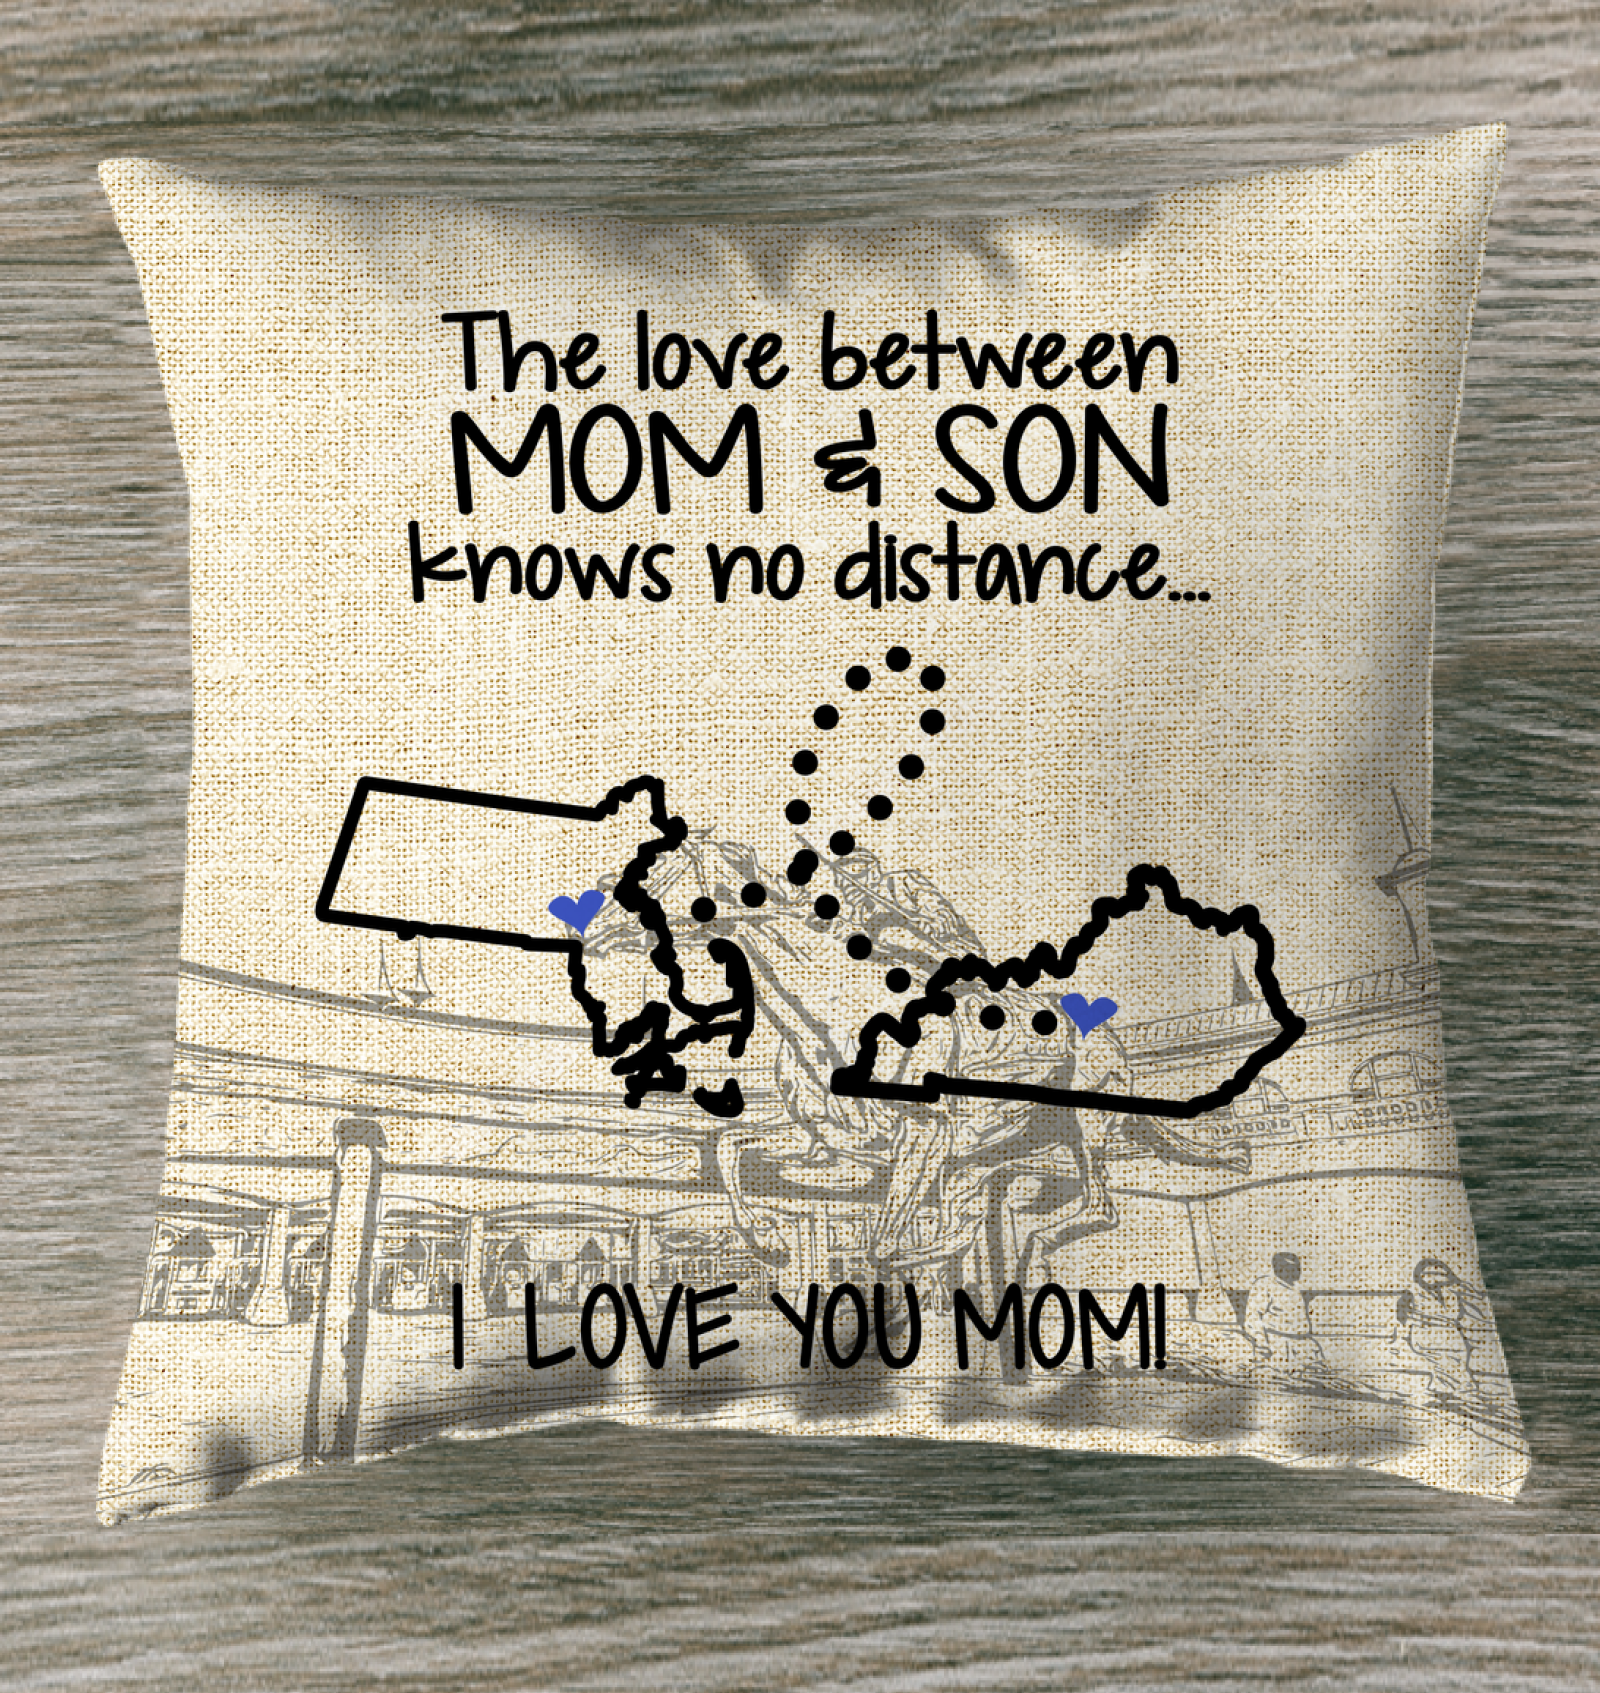 KENTUCKY MASSACHUSETTS THE LOVE MOM AND SON KNOWS NO DISTANCE